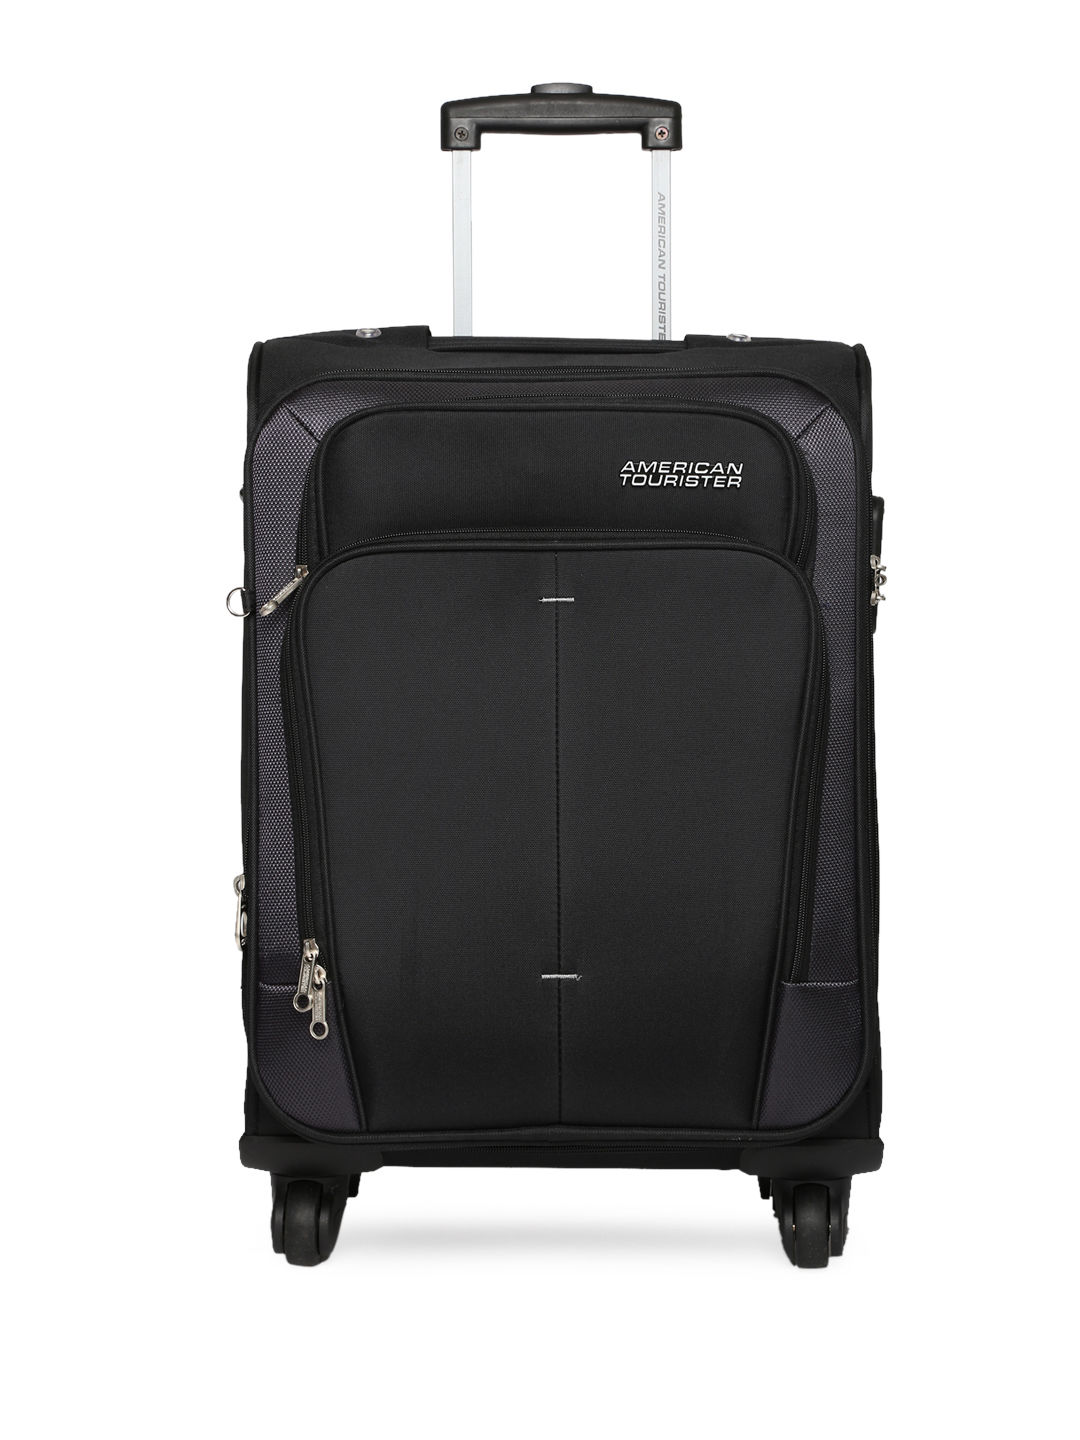 ecb18f9a15b0 American Tourister - Buy American Tourister Products Online